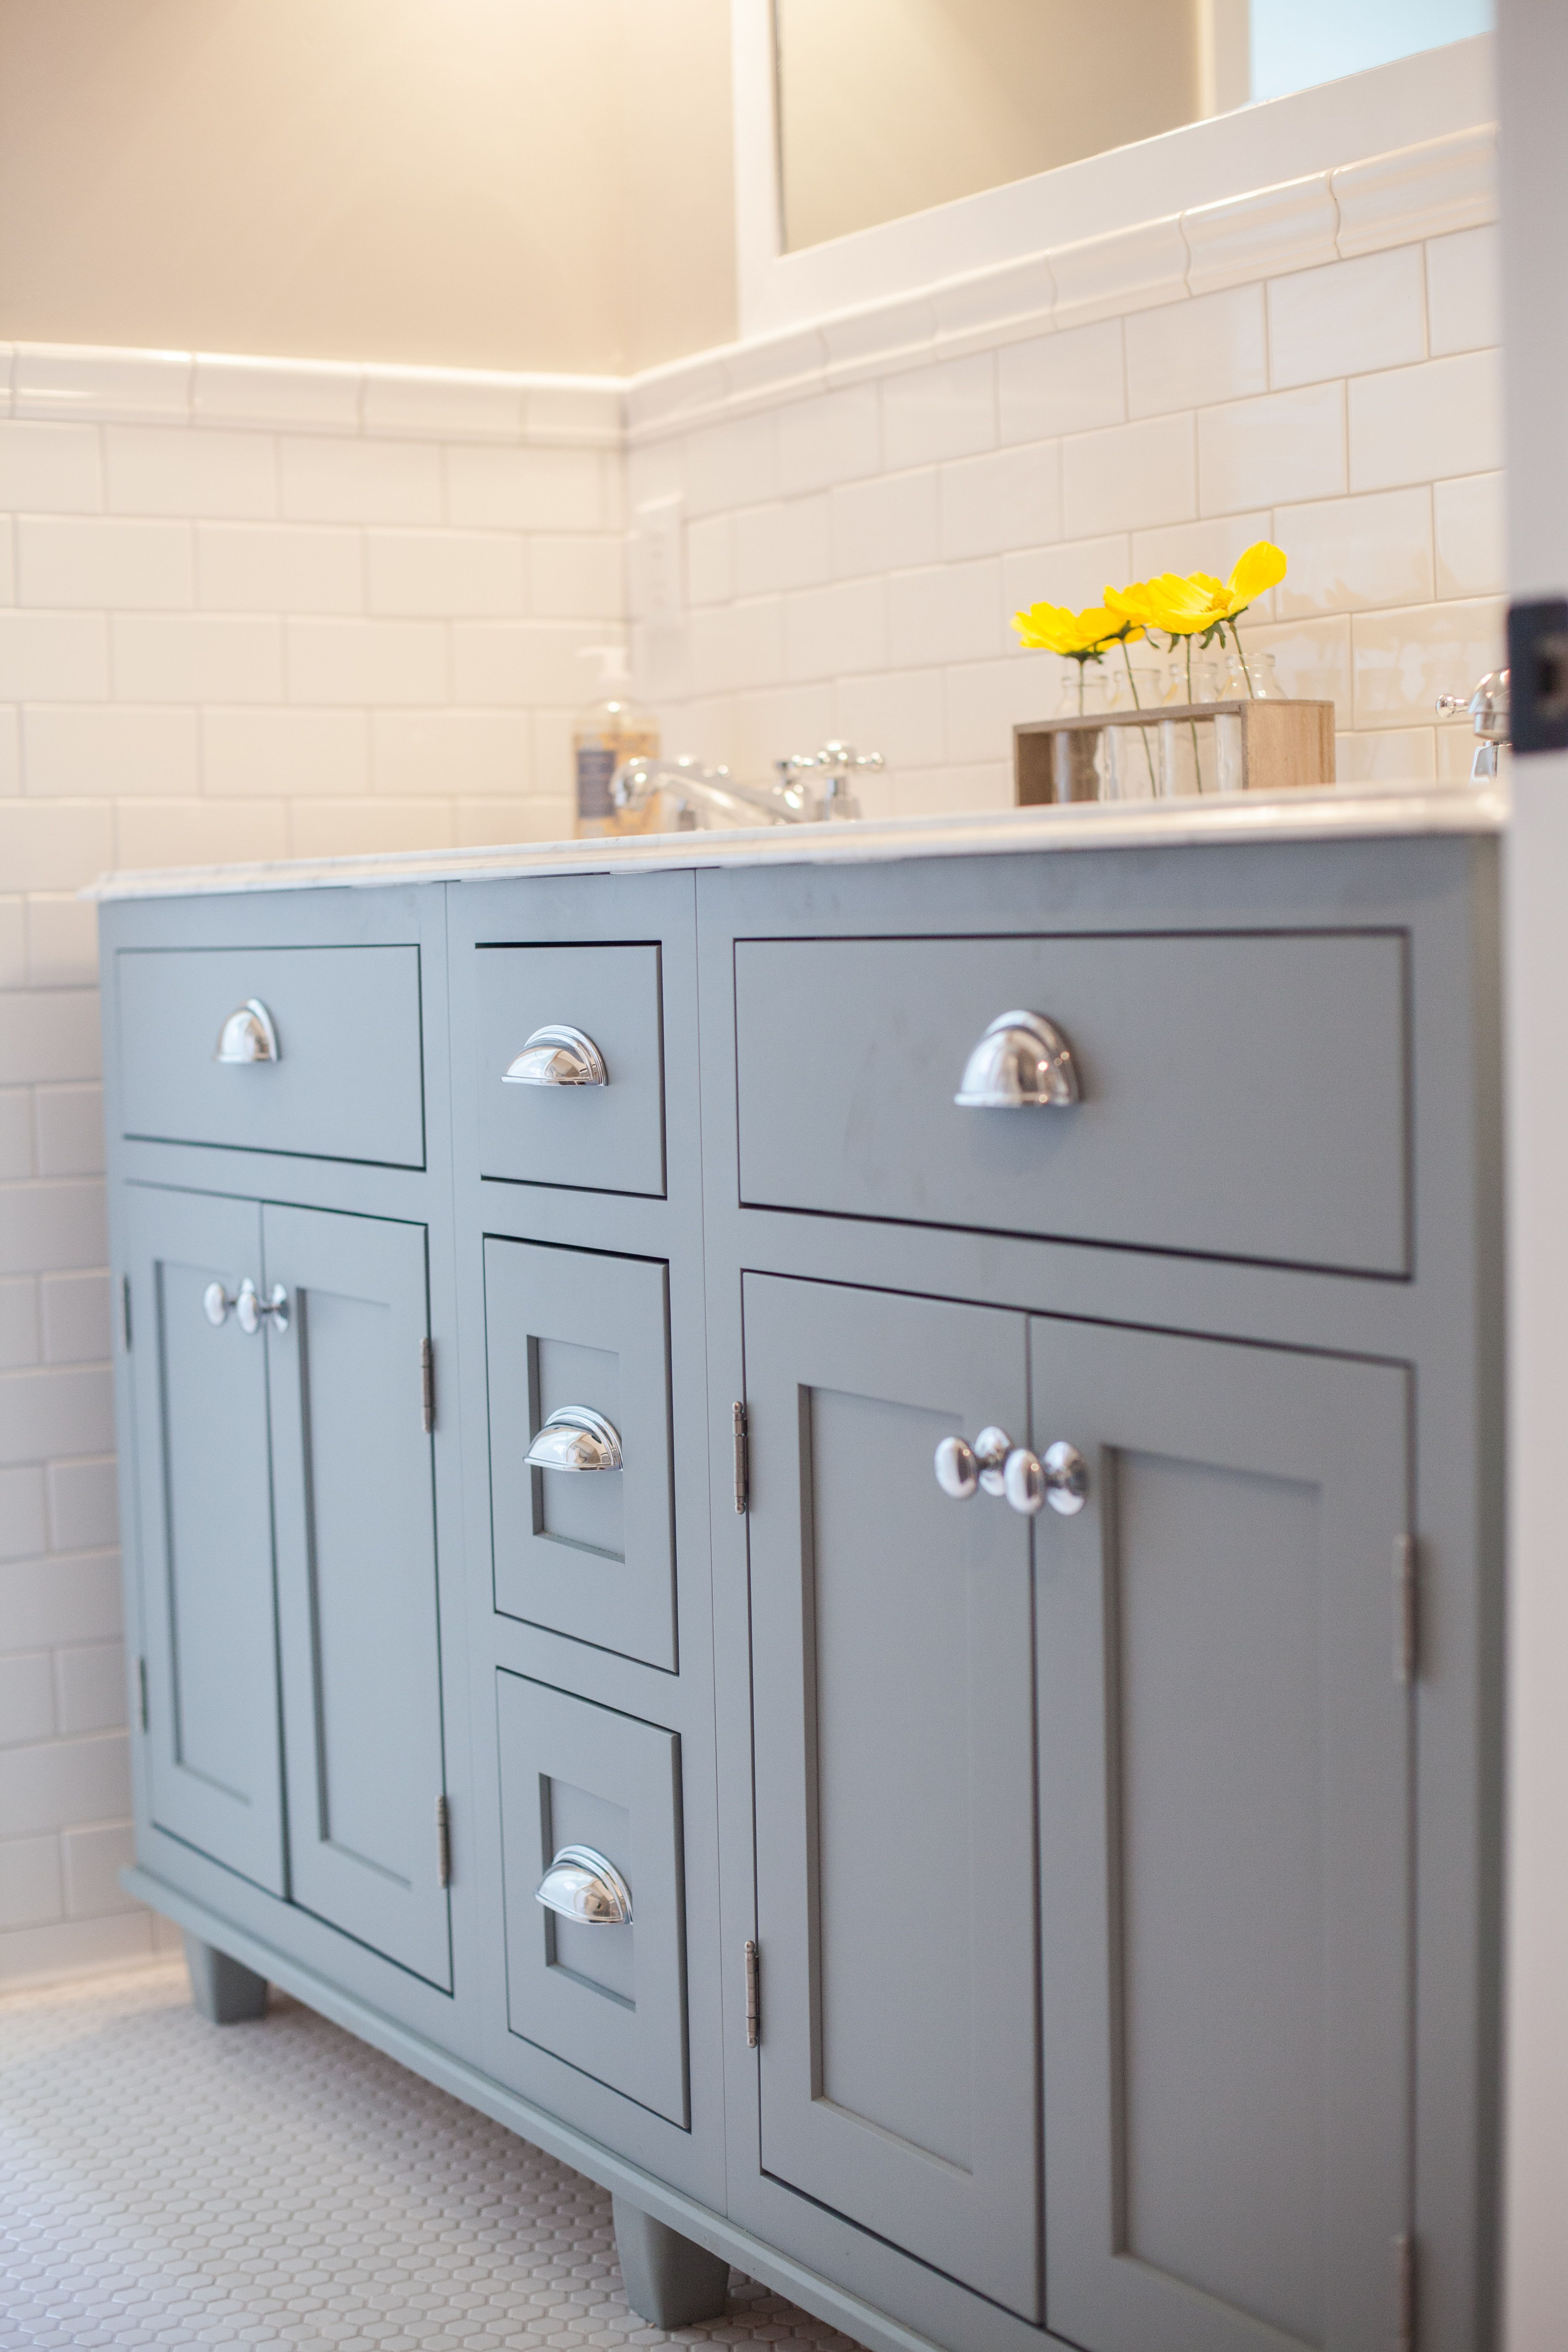 Shale Colored Shaker Cabinetry With Chrome Hardware By